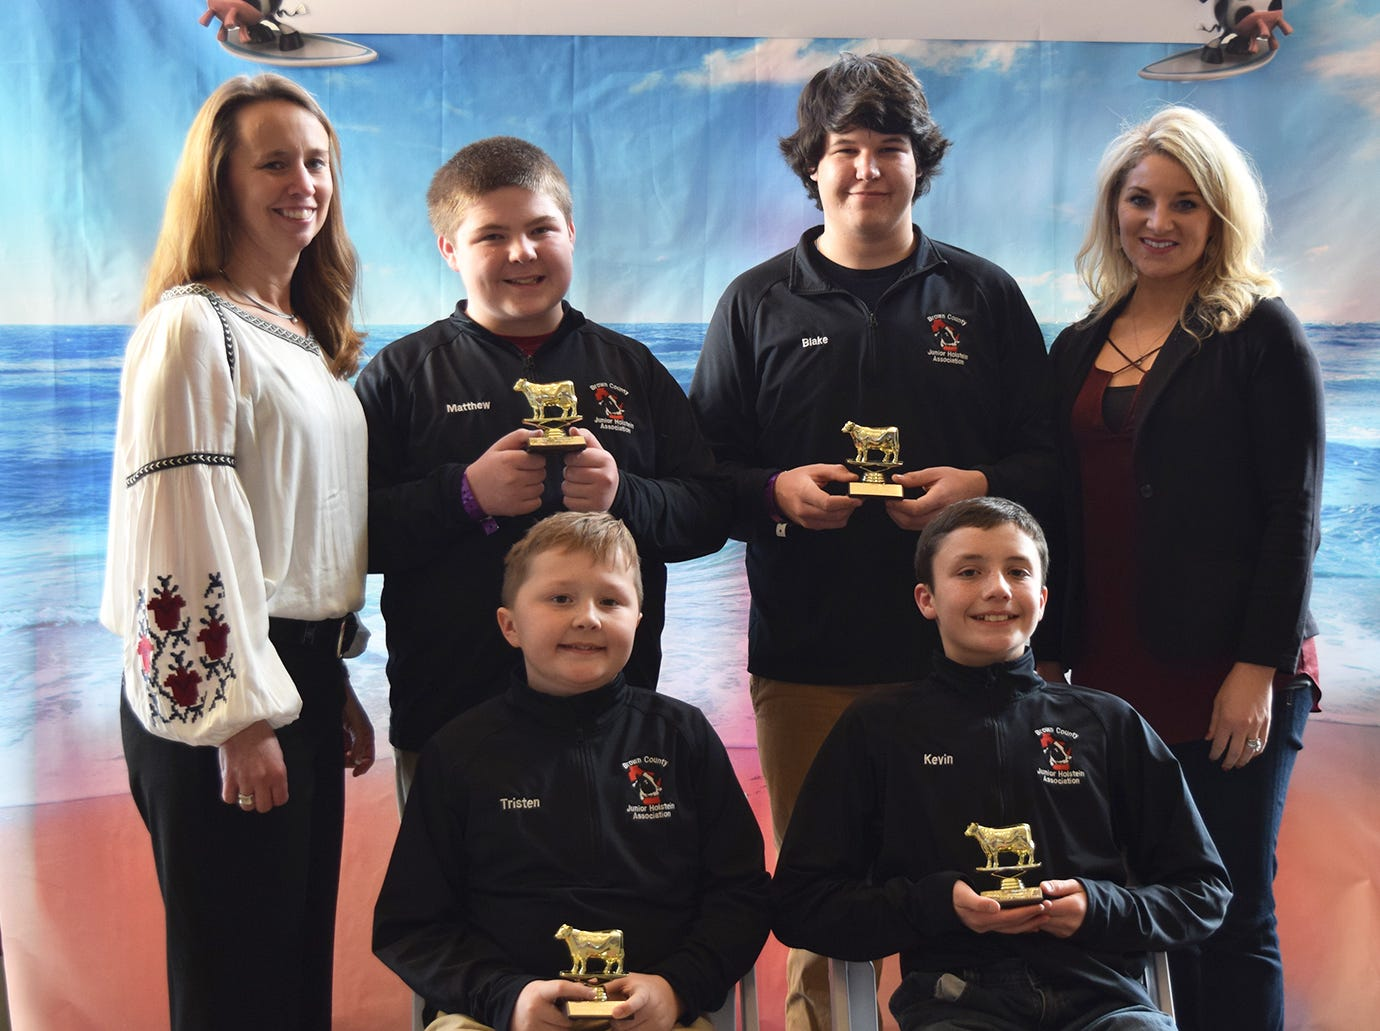 Earning a runner-up finish in the junior division of the Dairy Bowl contest was Brown County, comprised of team members, front row (from left) Tristen Ostrom and Kevin Biese. Back row (from left) coach Annette Ostrom, Matthew Ossmann, Blake Van de Hei and coach Peggy Coffeen.